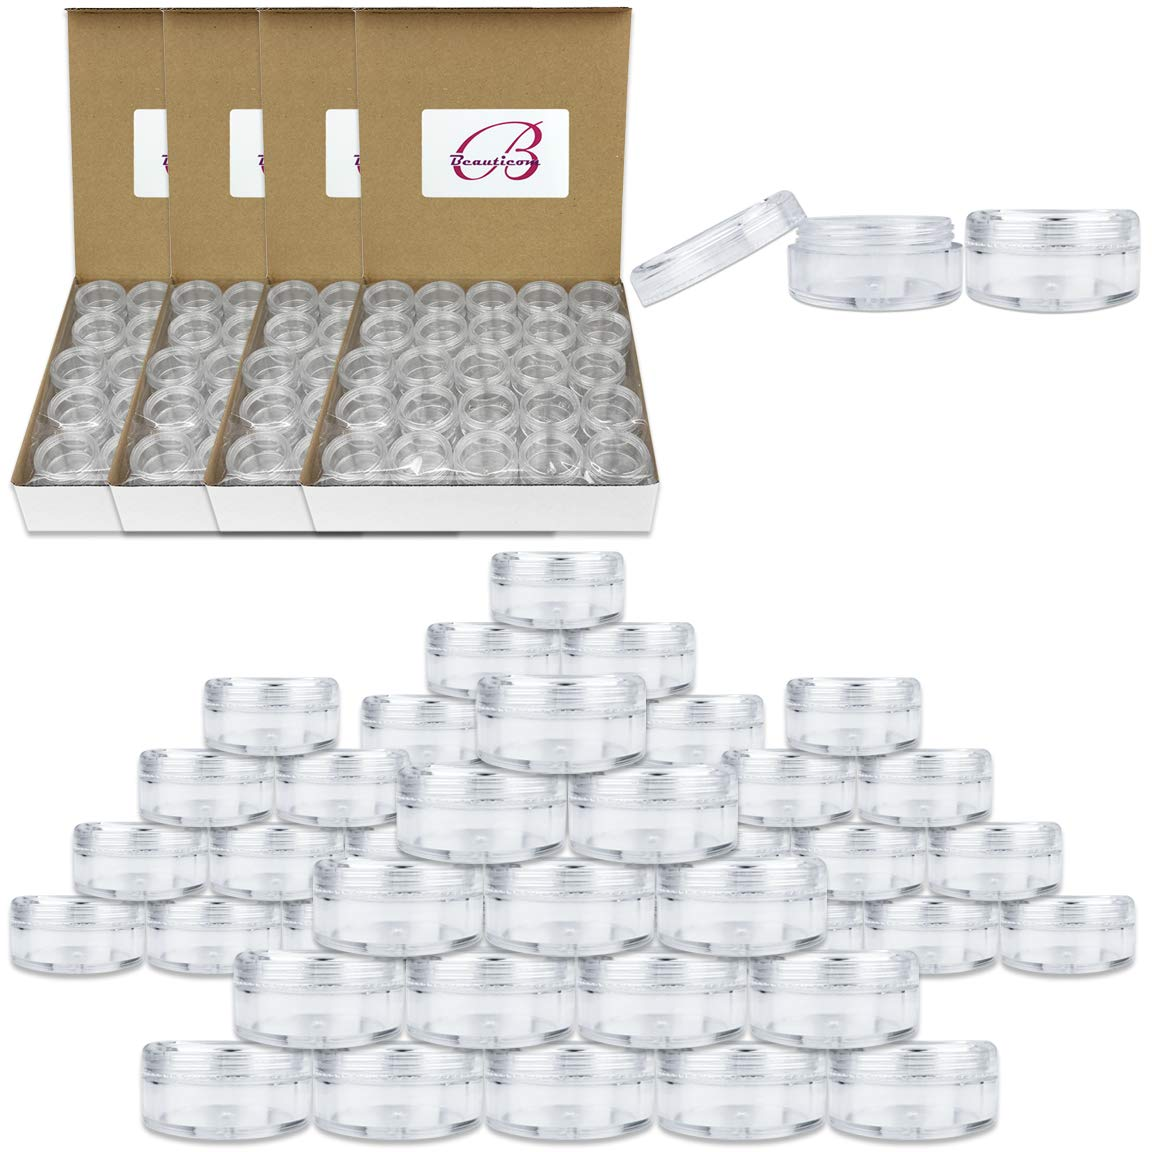 (Quantity: 500 Pieces) Beauticom 5G/5ML Round Clear Jars with Screw Cap Lids for Cosmetics, Medication, Lab and Field Research Samples, Beauty and Health Aids - BPA Free